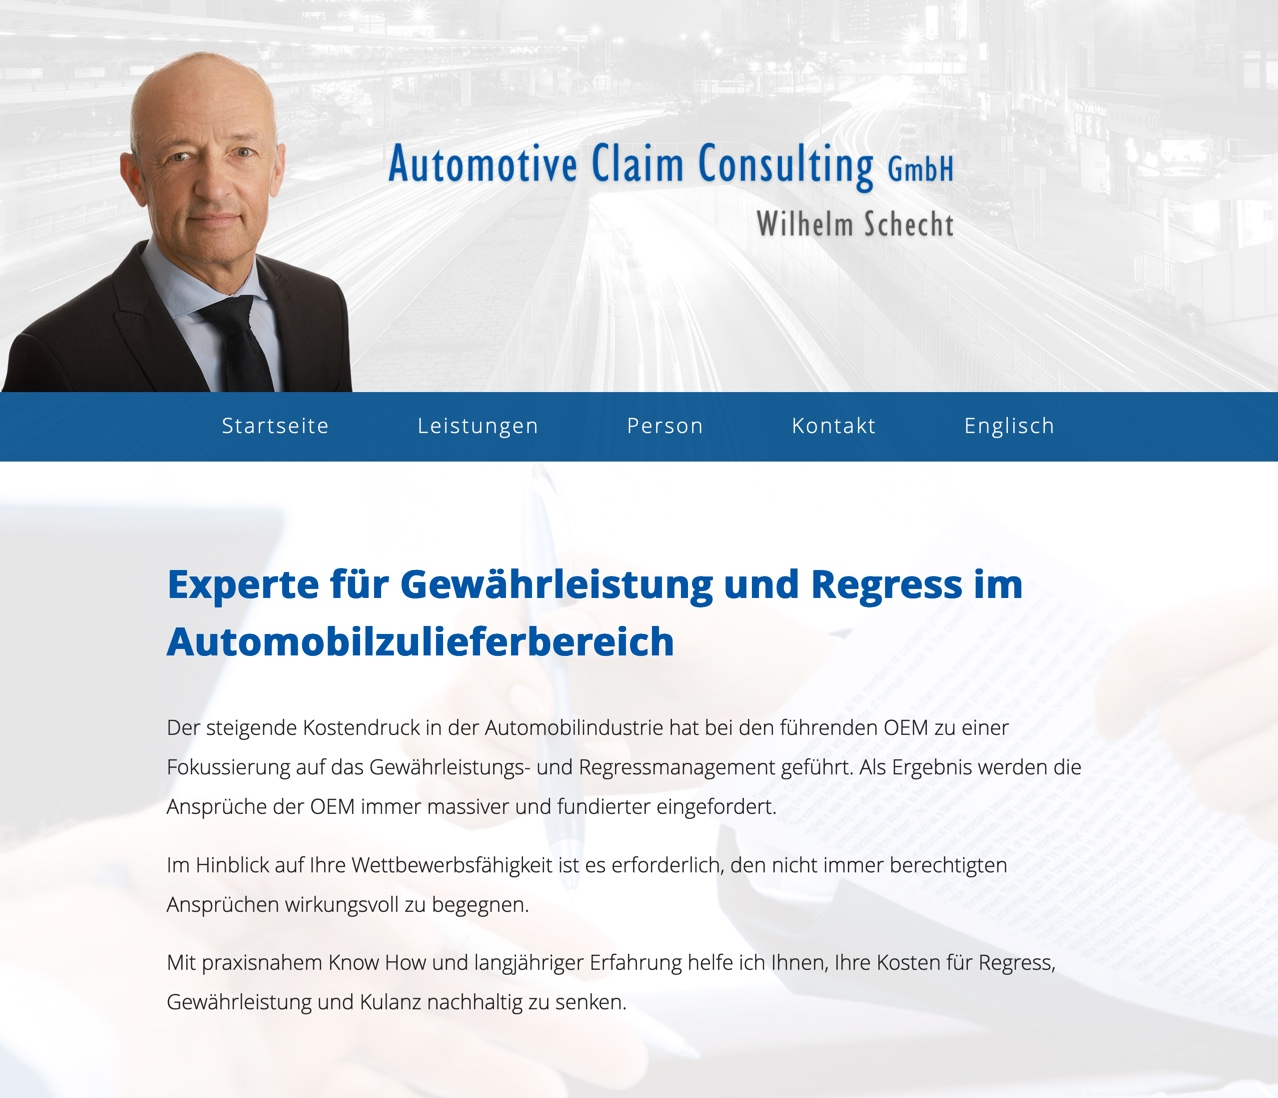 Automotive Claim Consulting GmbH